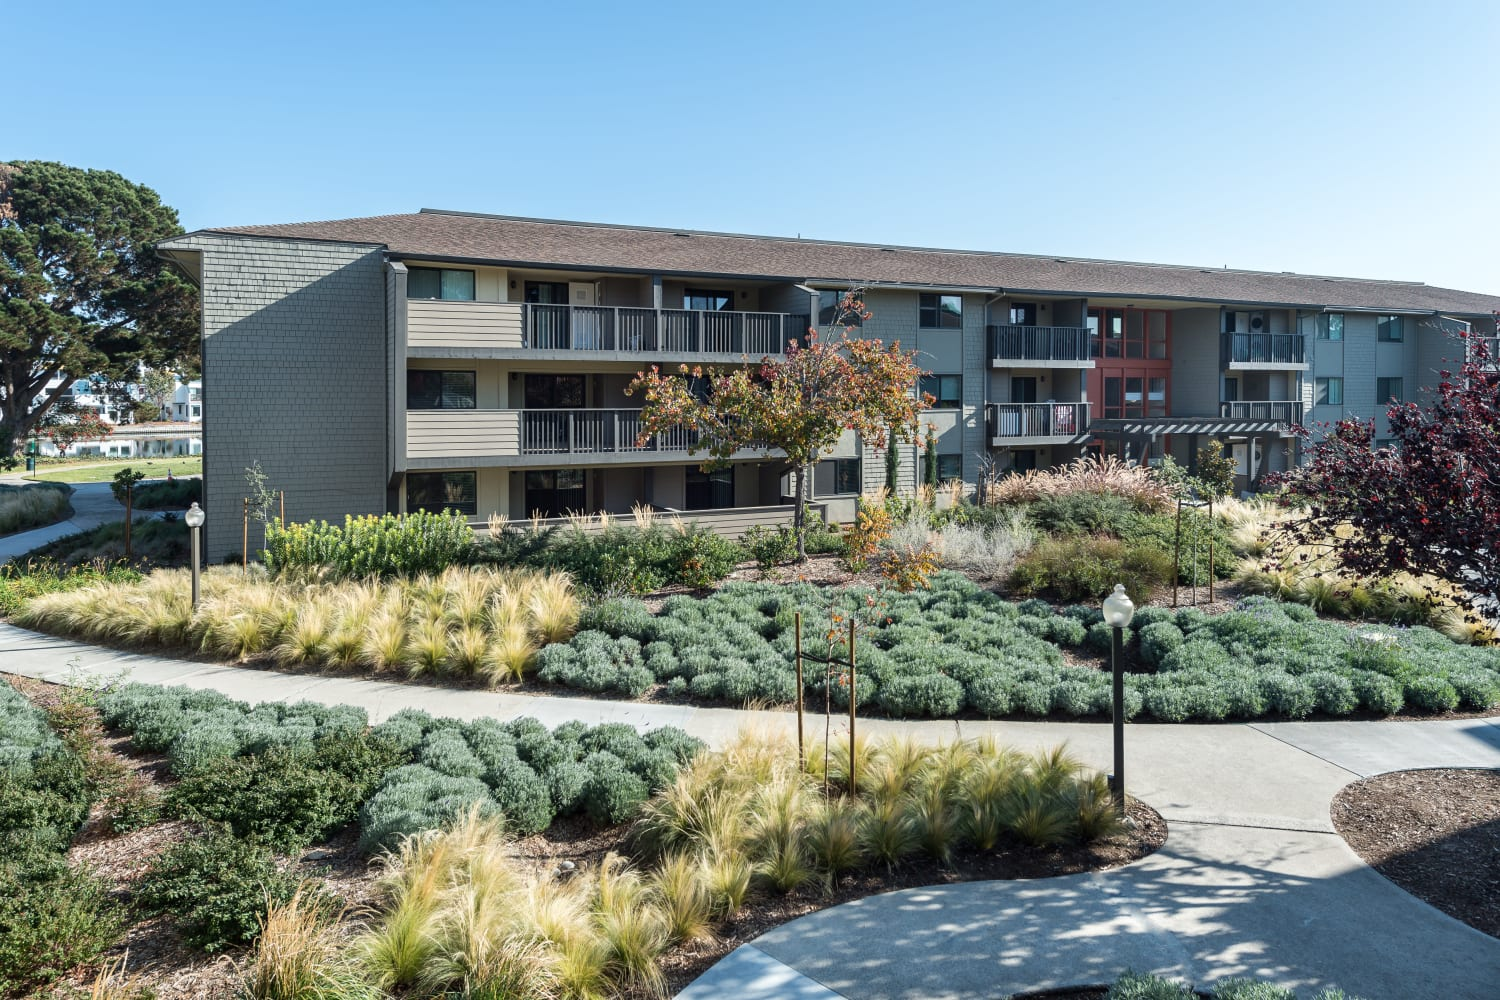 Harbor Cove Apartments in Foster City, California, has beautifully maintained grounds